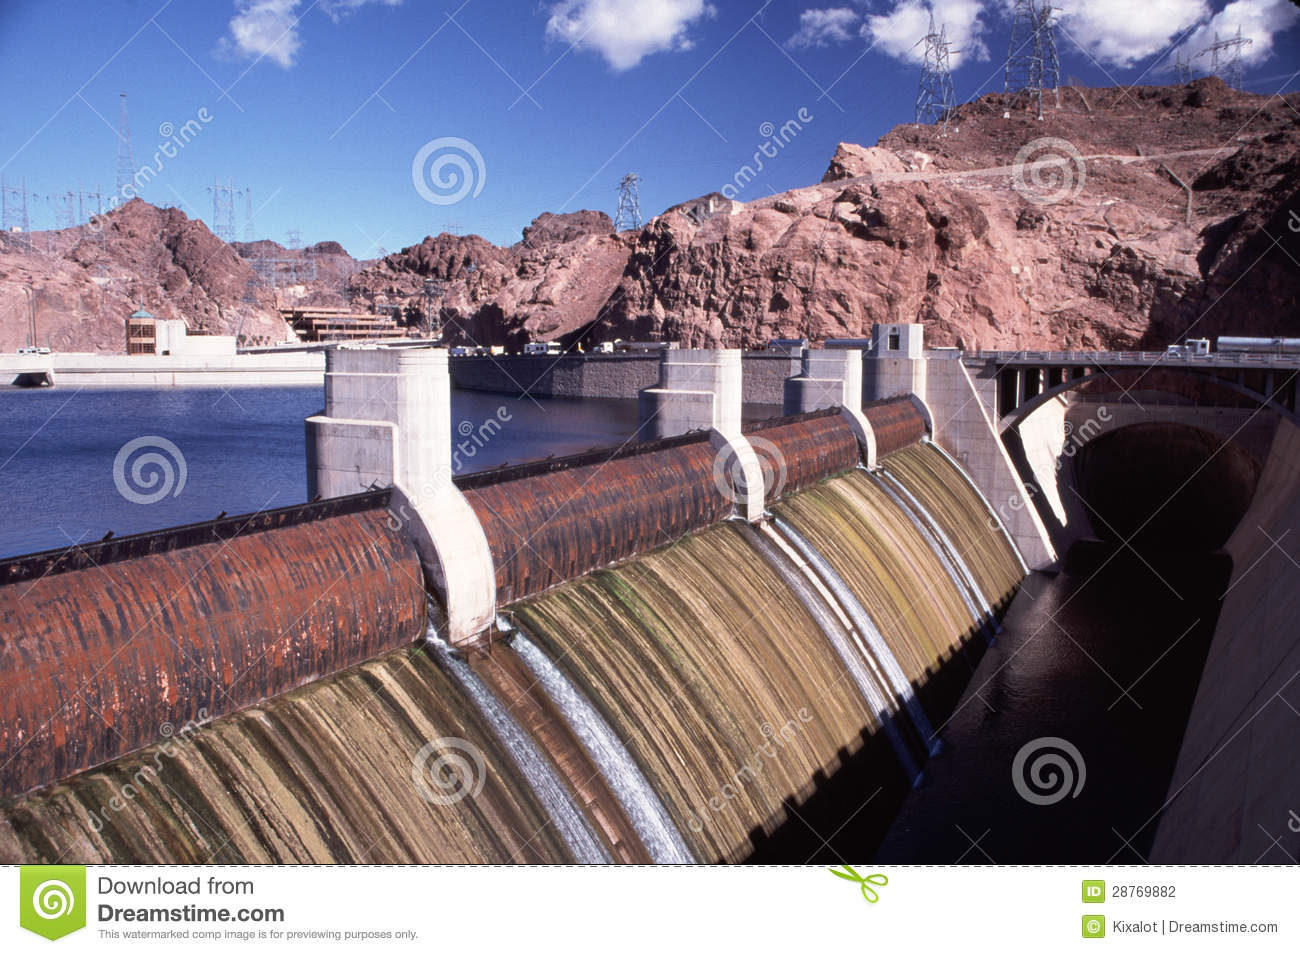 Close Up Of Hoover Dam Spillway Stock Photo - Image of spillway